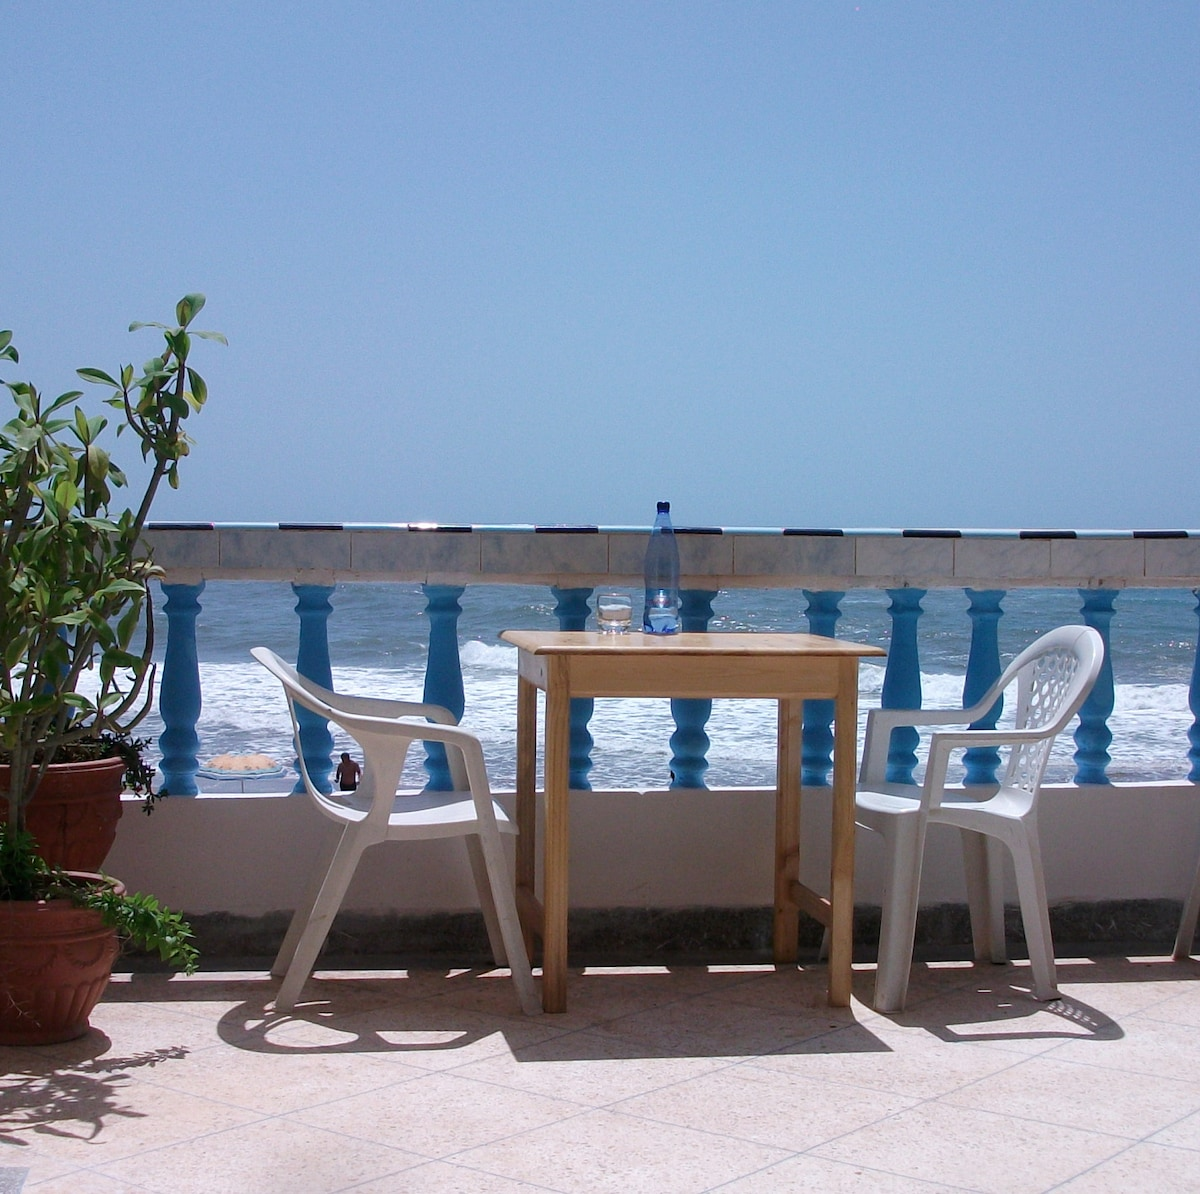 one of the many terraces at Aftas beach guest house